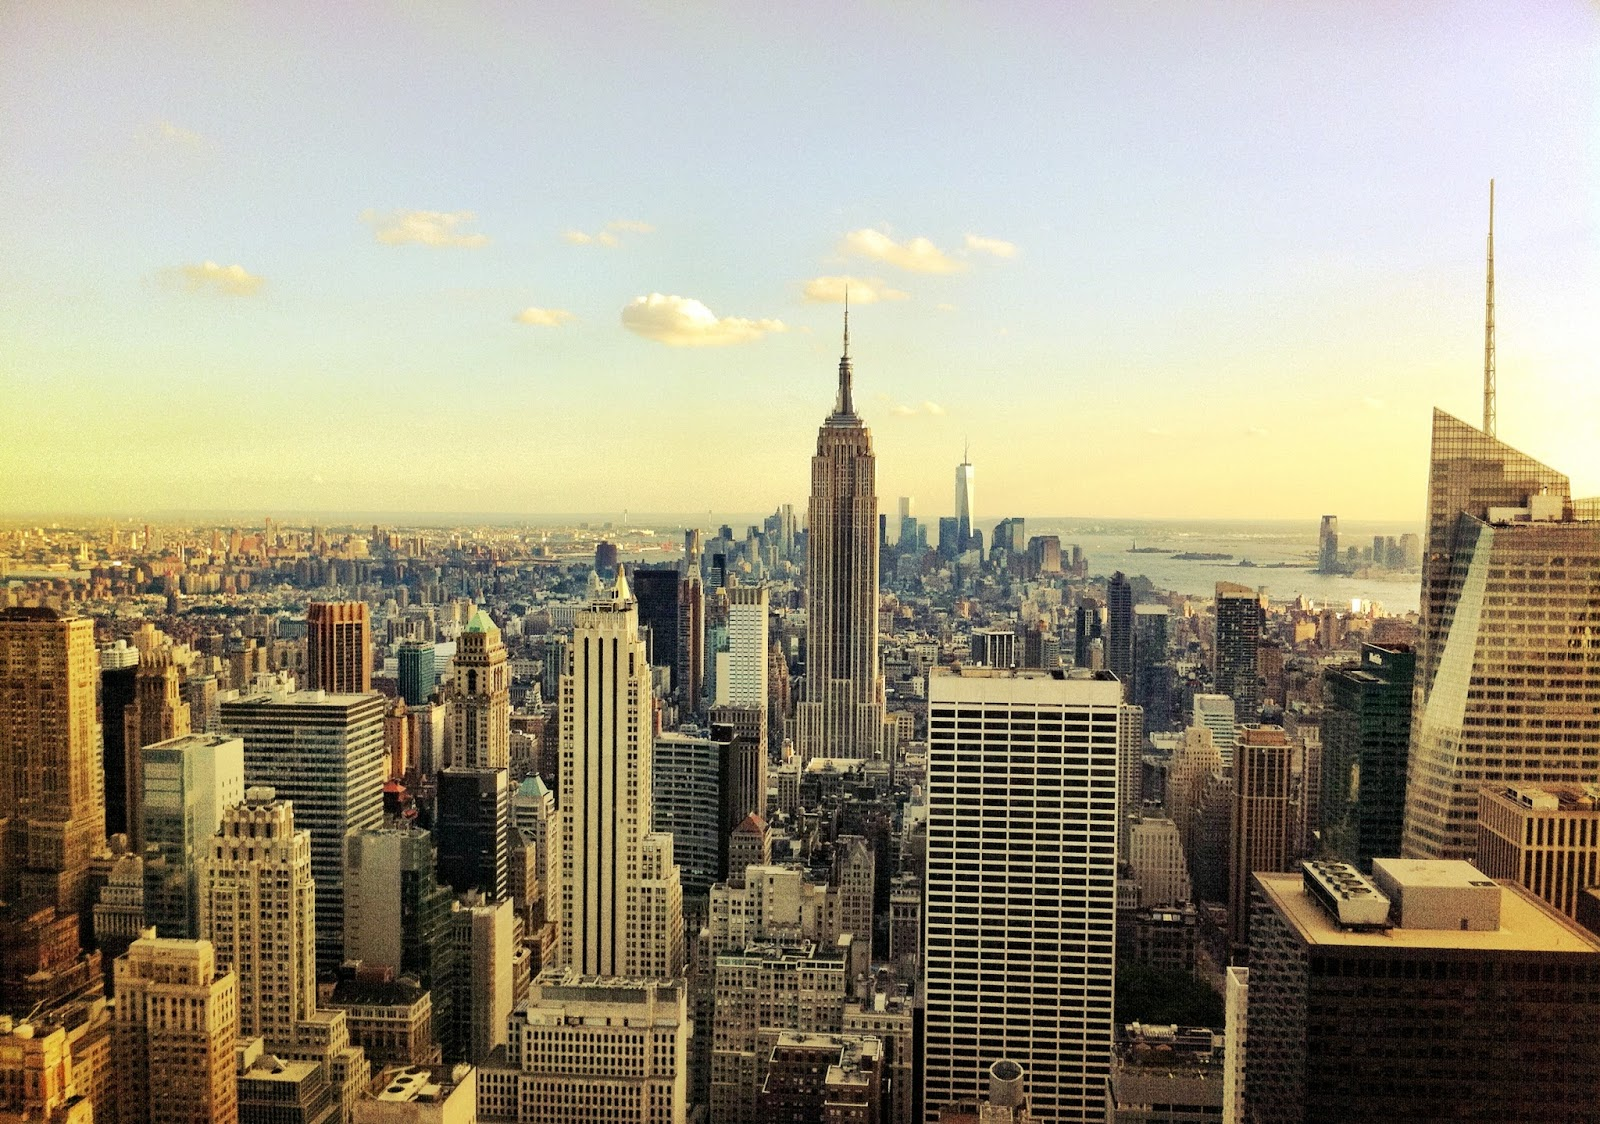 Empire State Building Observation Deck NYC ♥ NYC: Views Fro...